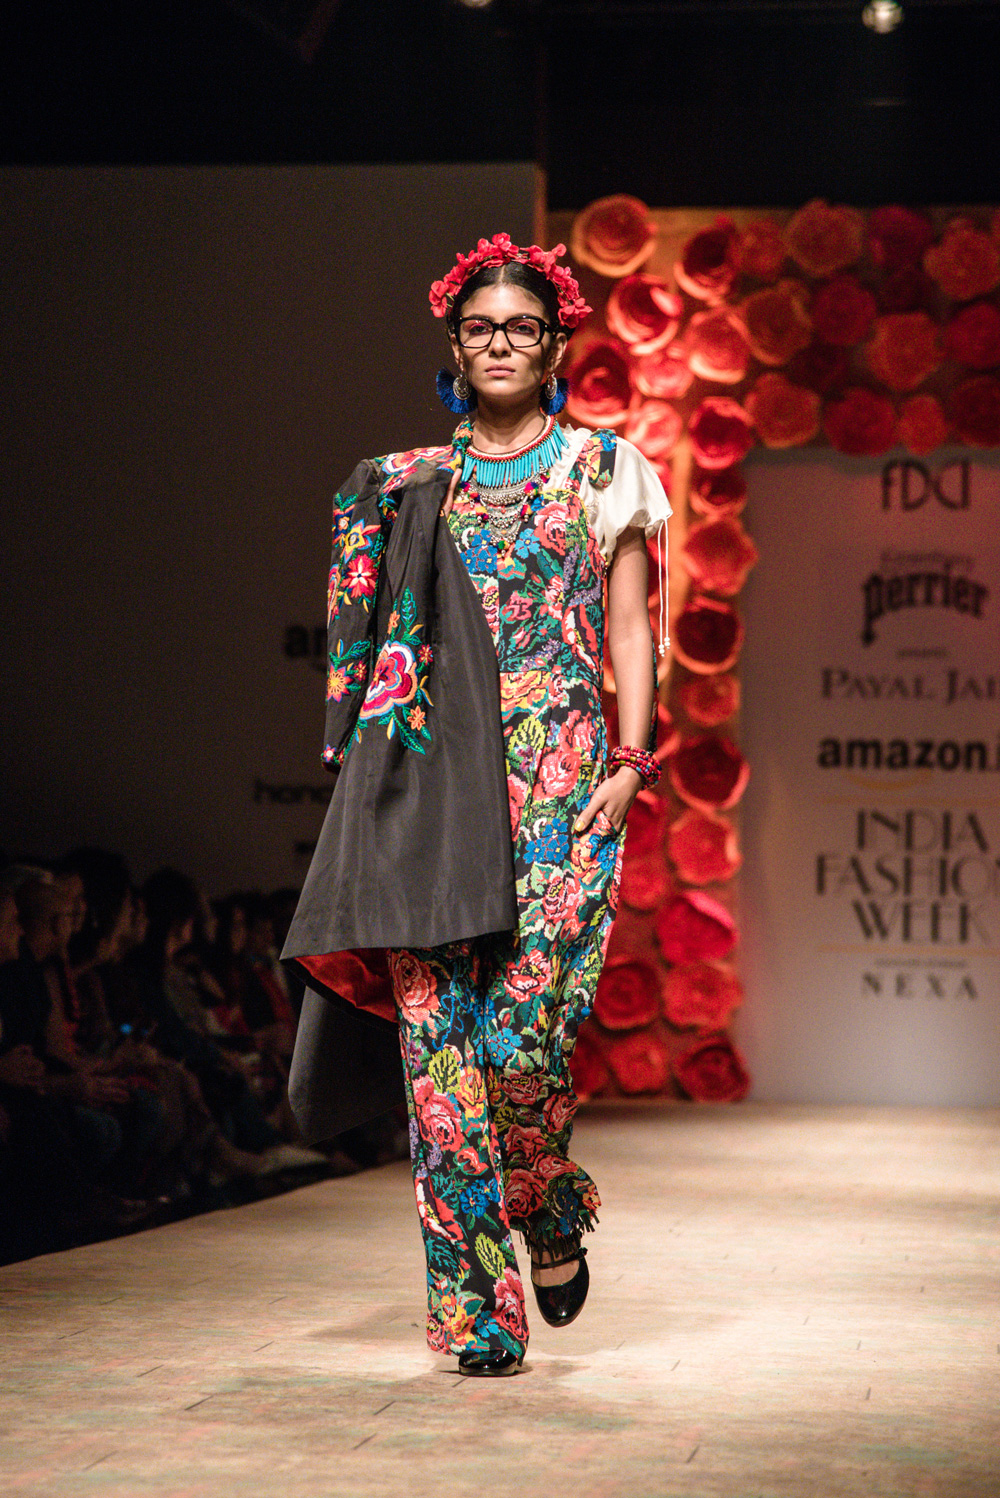 Payal Jain FDCI Amazon India Fashion Week Spring Summer 2018 Look 17